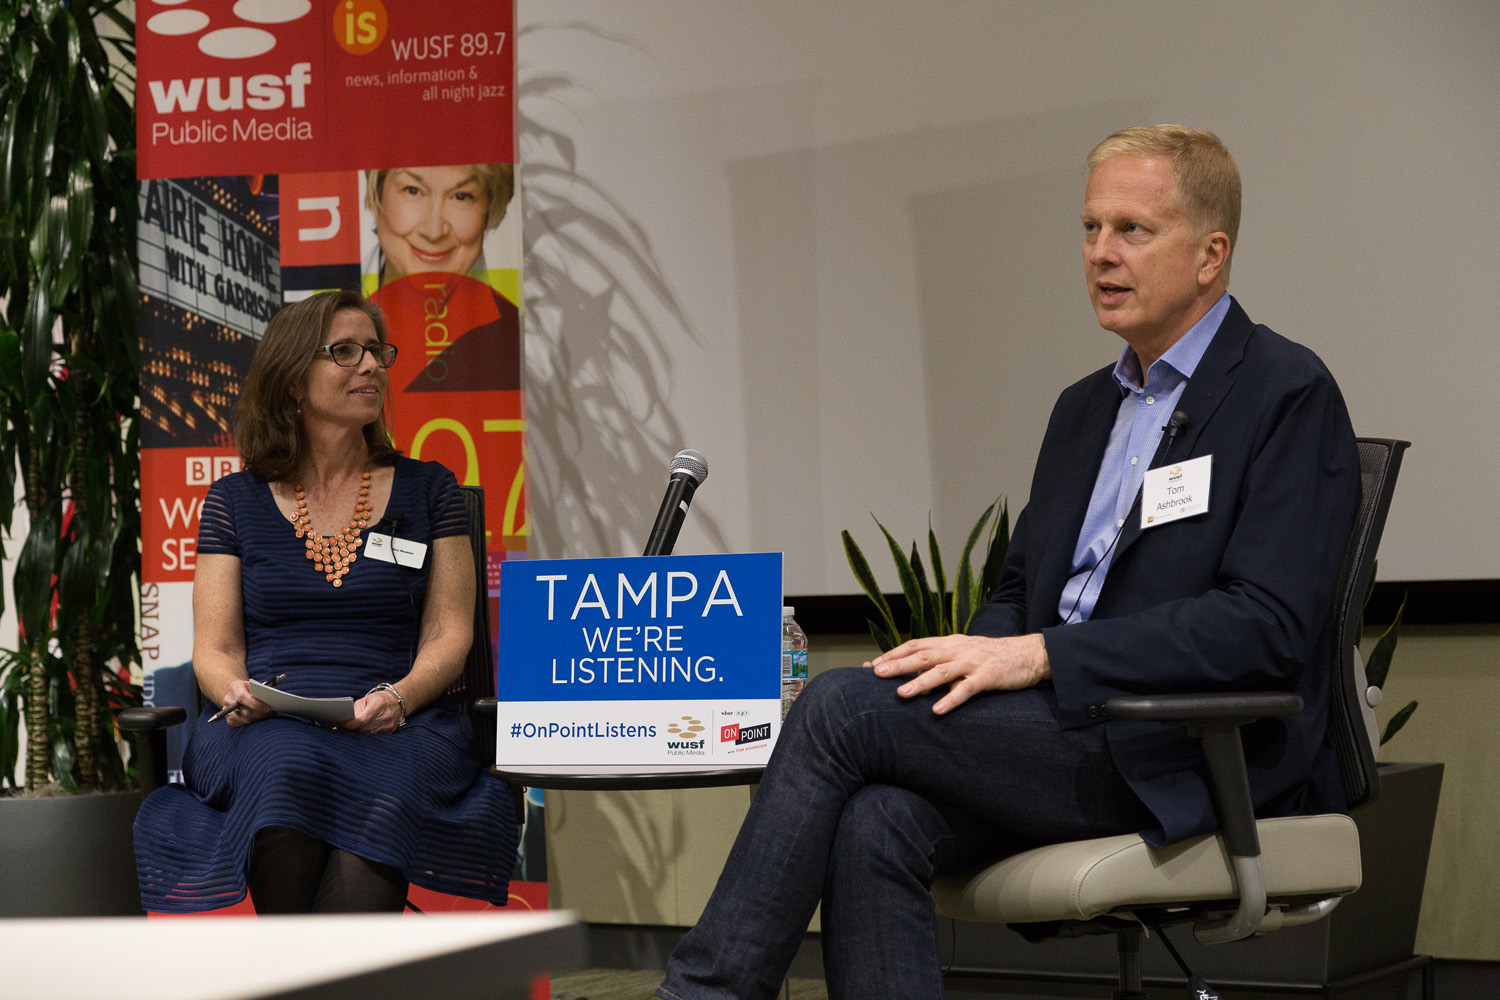 Mary Shedden, news director at member station WUSF, talks with On Point host Tom Ashbrook at the #OnPointListens event in Tampa, FL. (Stephen Glass/WUSF)